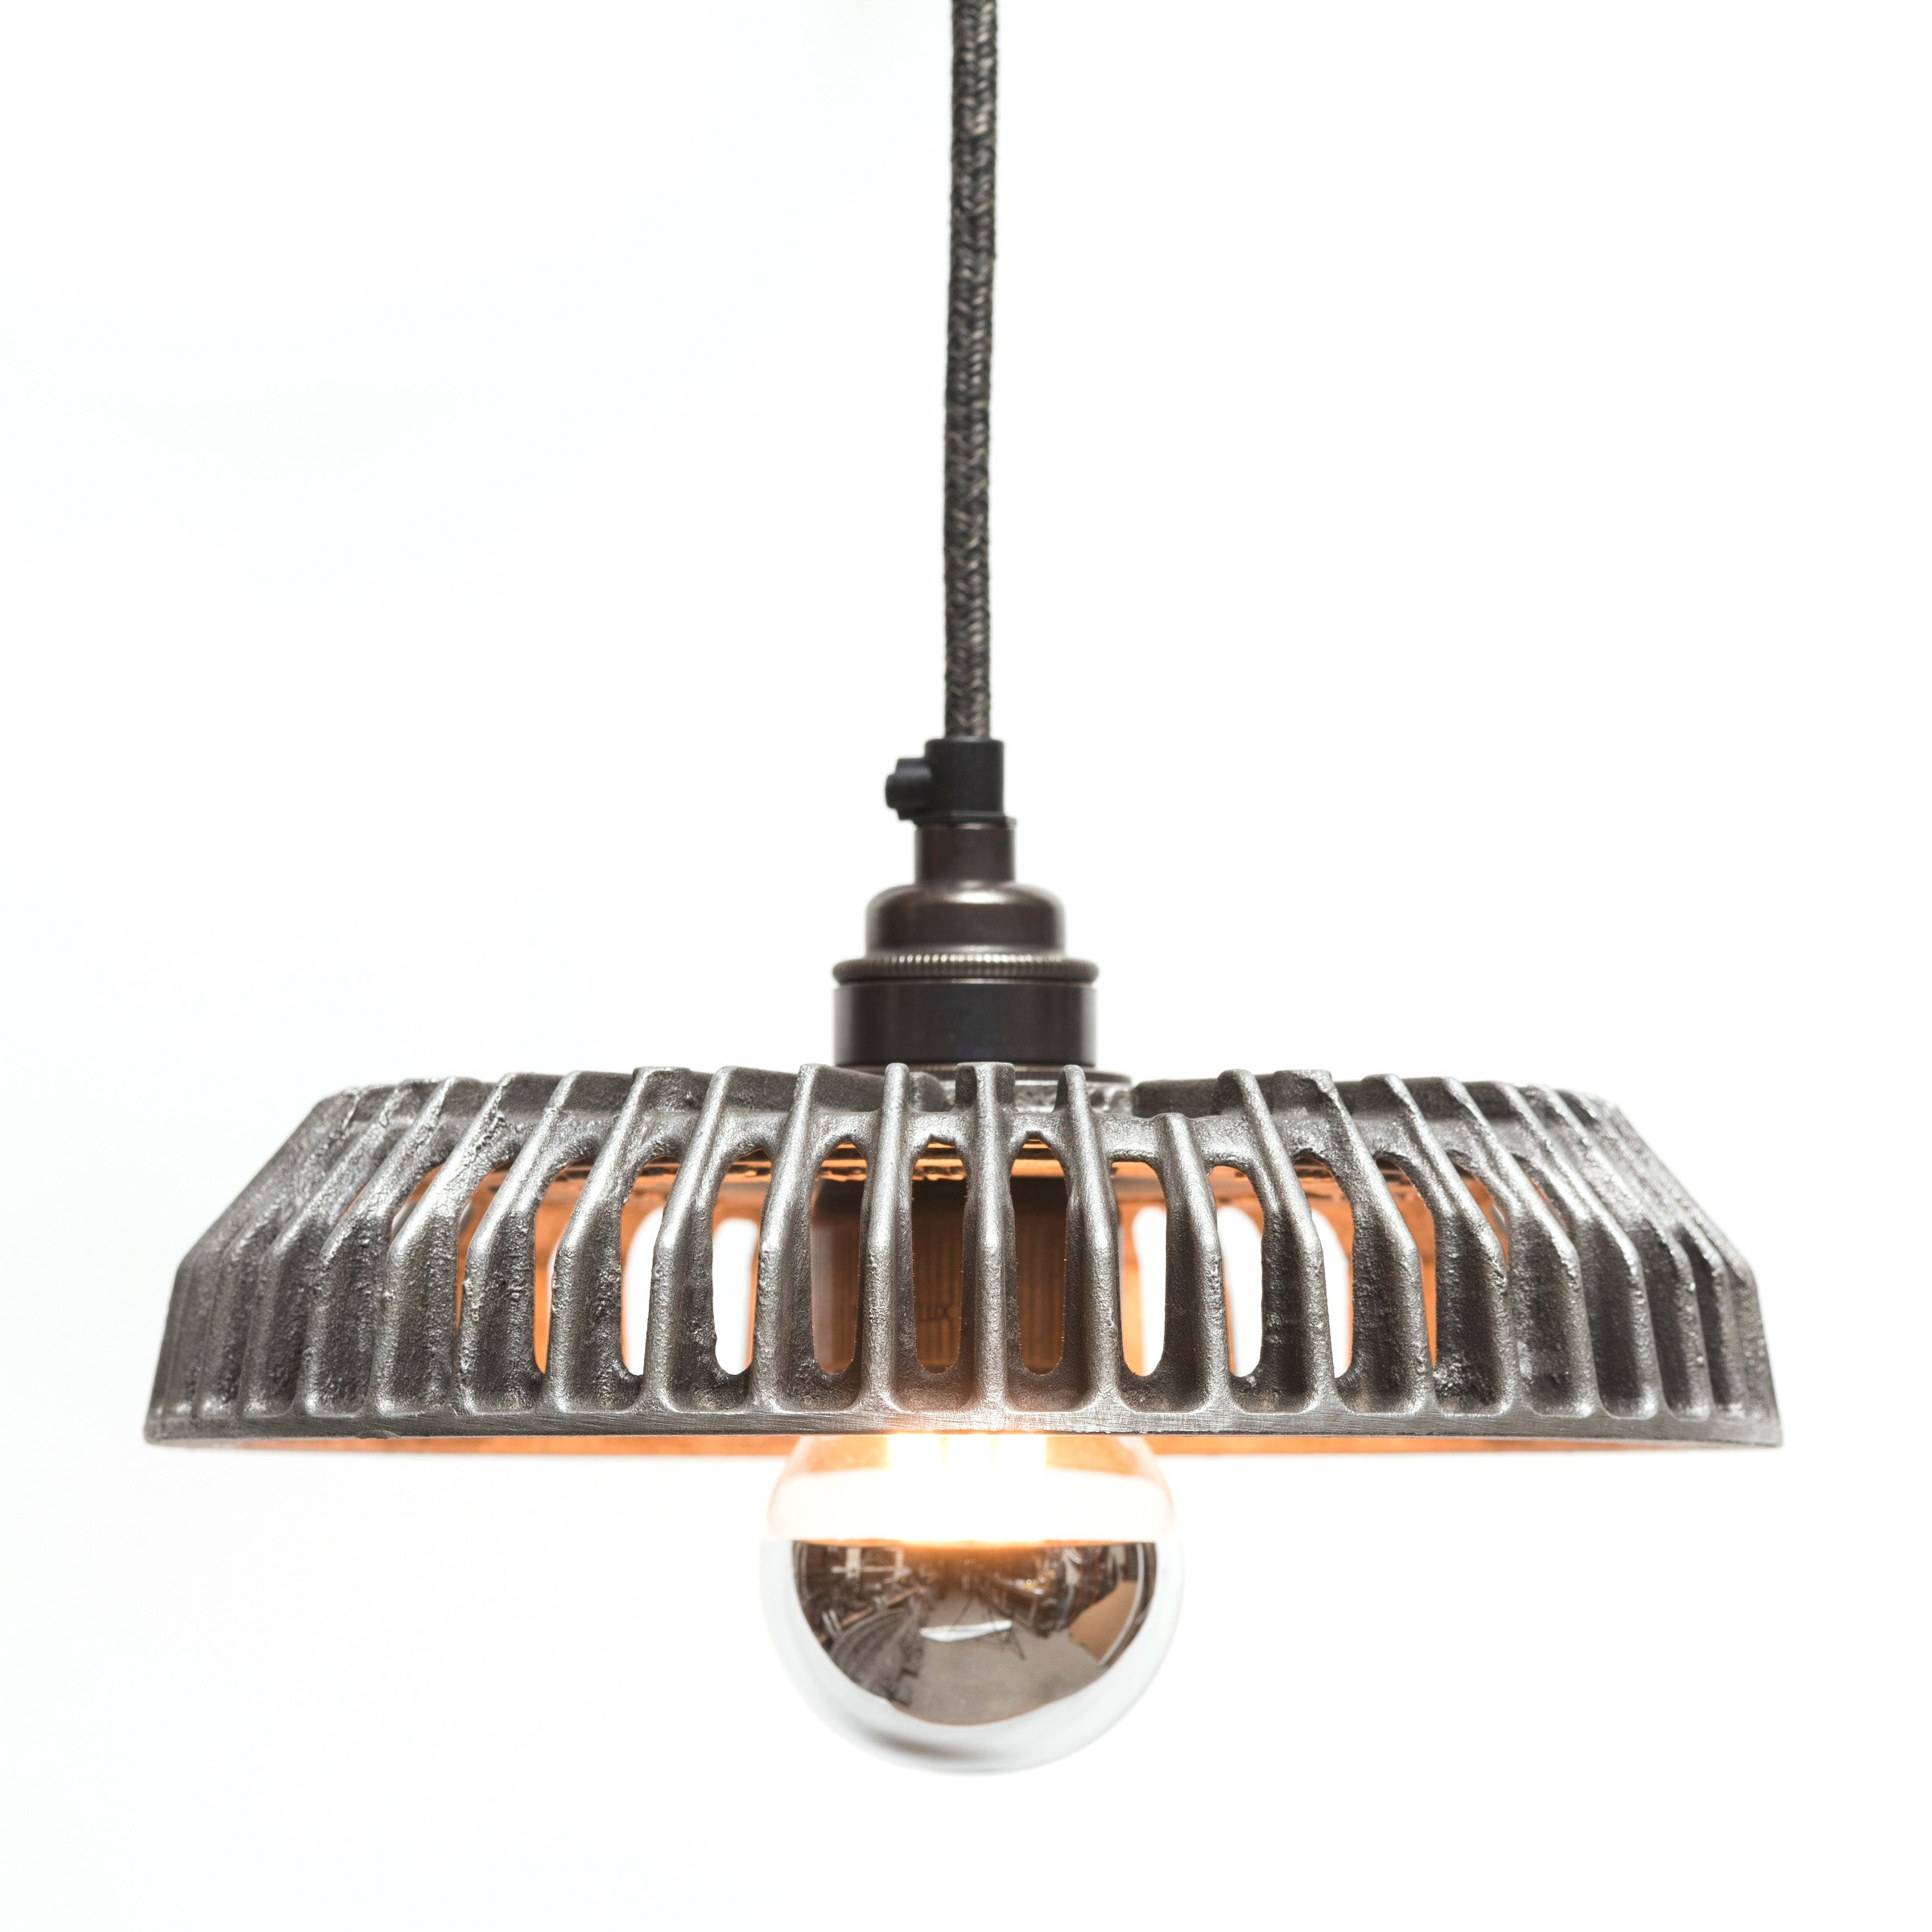 The Rag & Bone Man hand polished Pattern #2 Basket pendant lamp from Warehouse Home